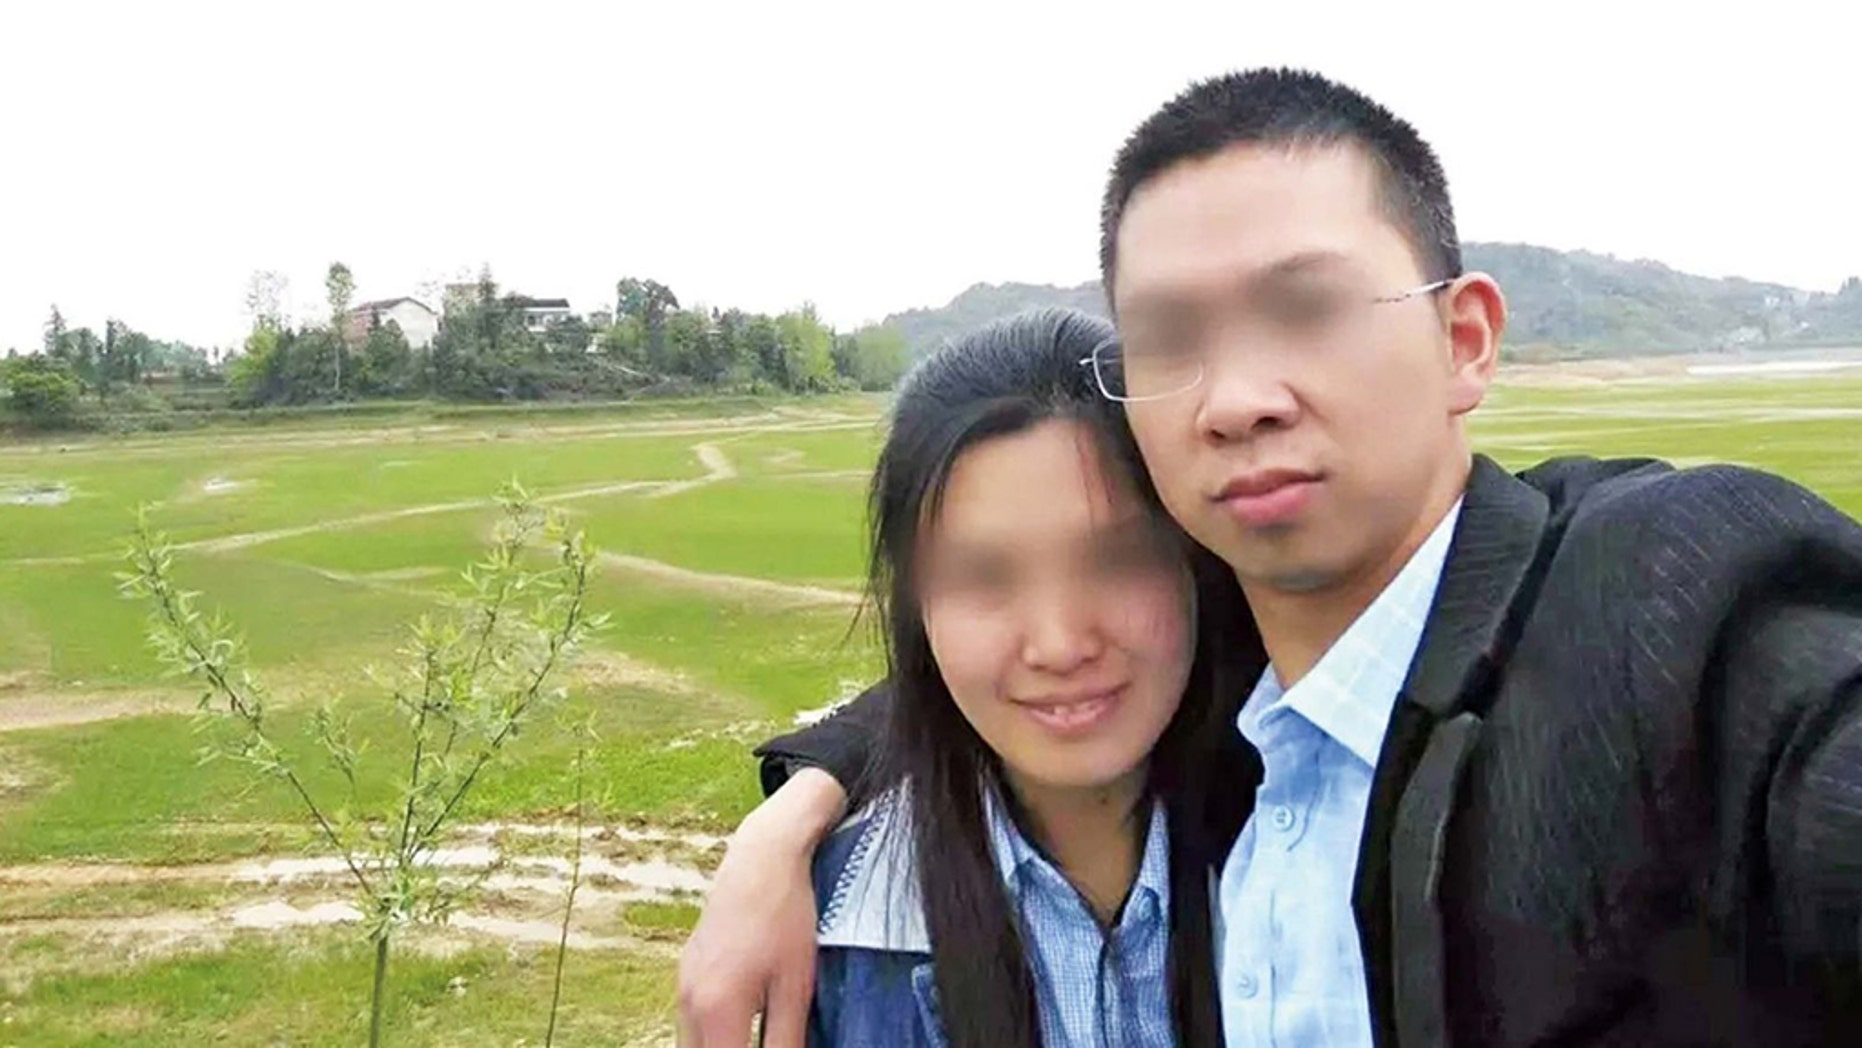 Chinese Woman Kills Herself And Her 2 Children After Husband 'Fakes Death'